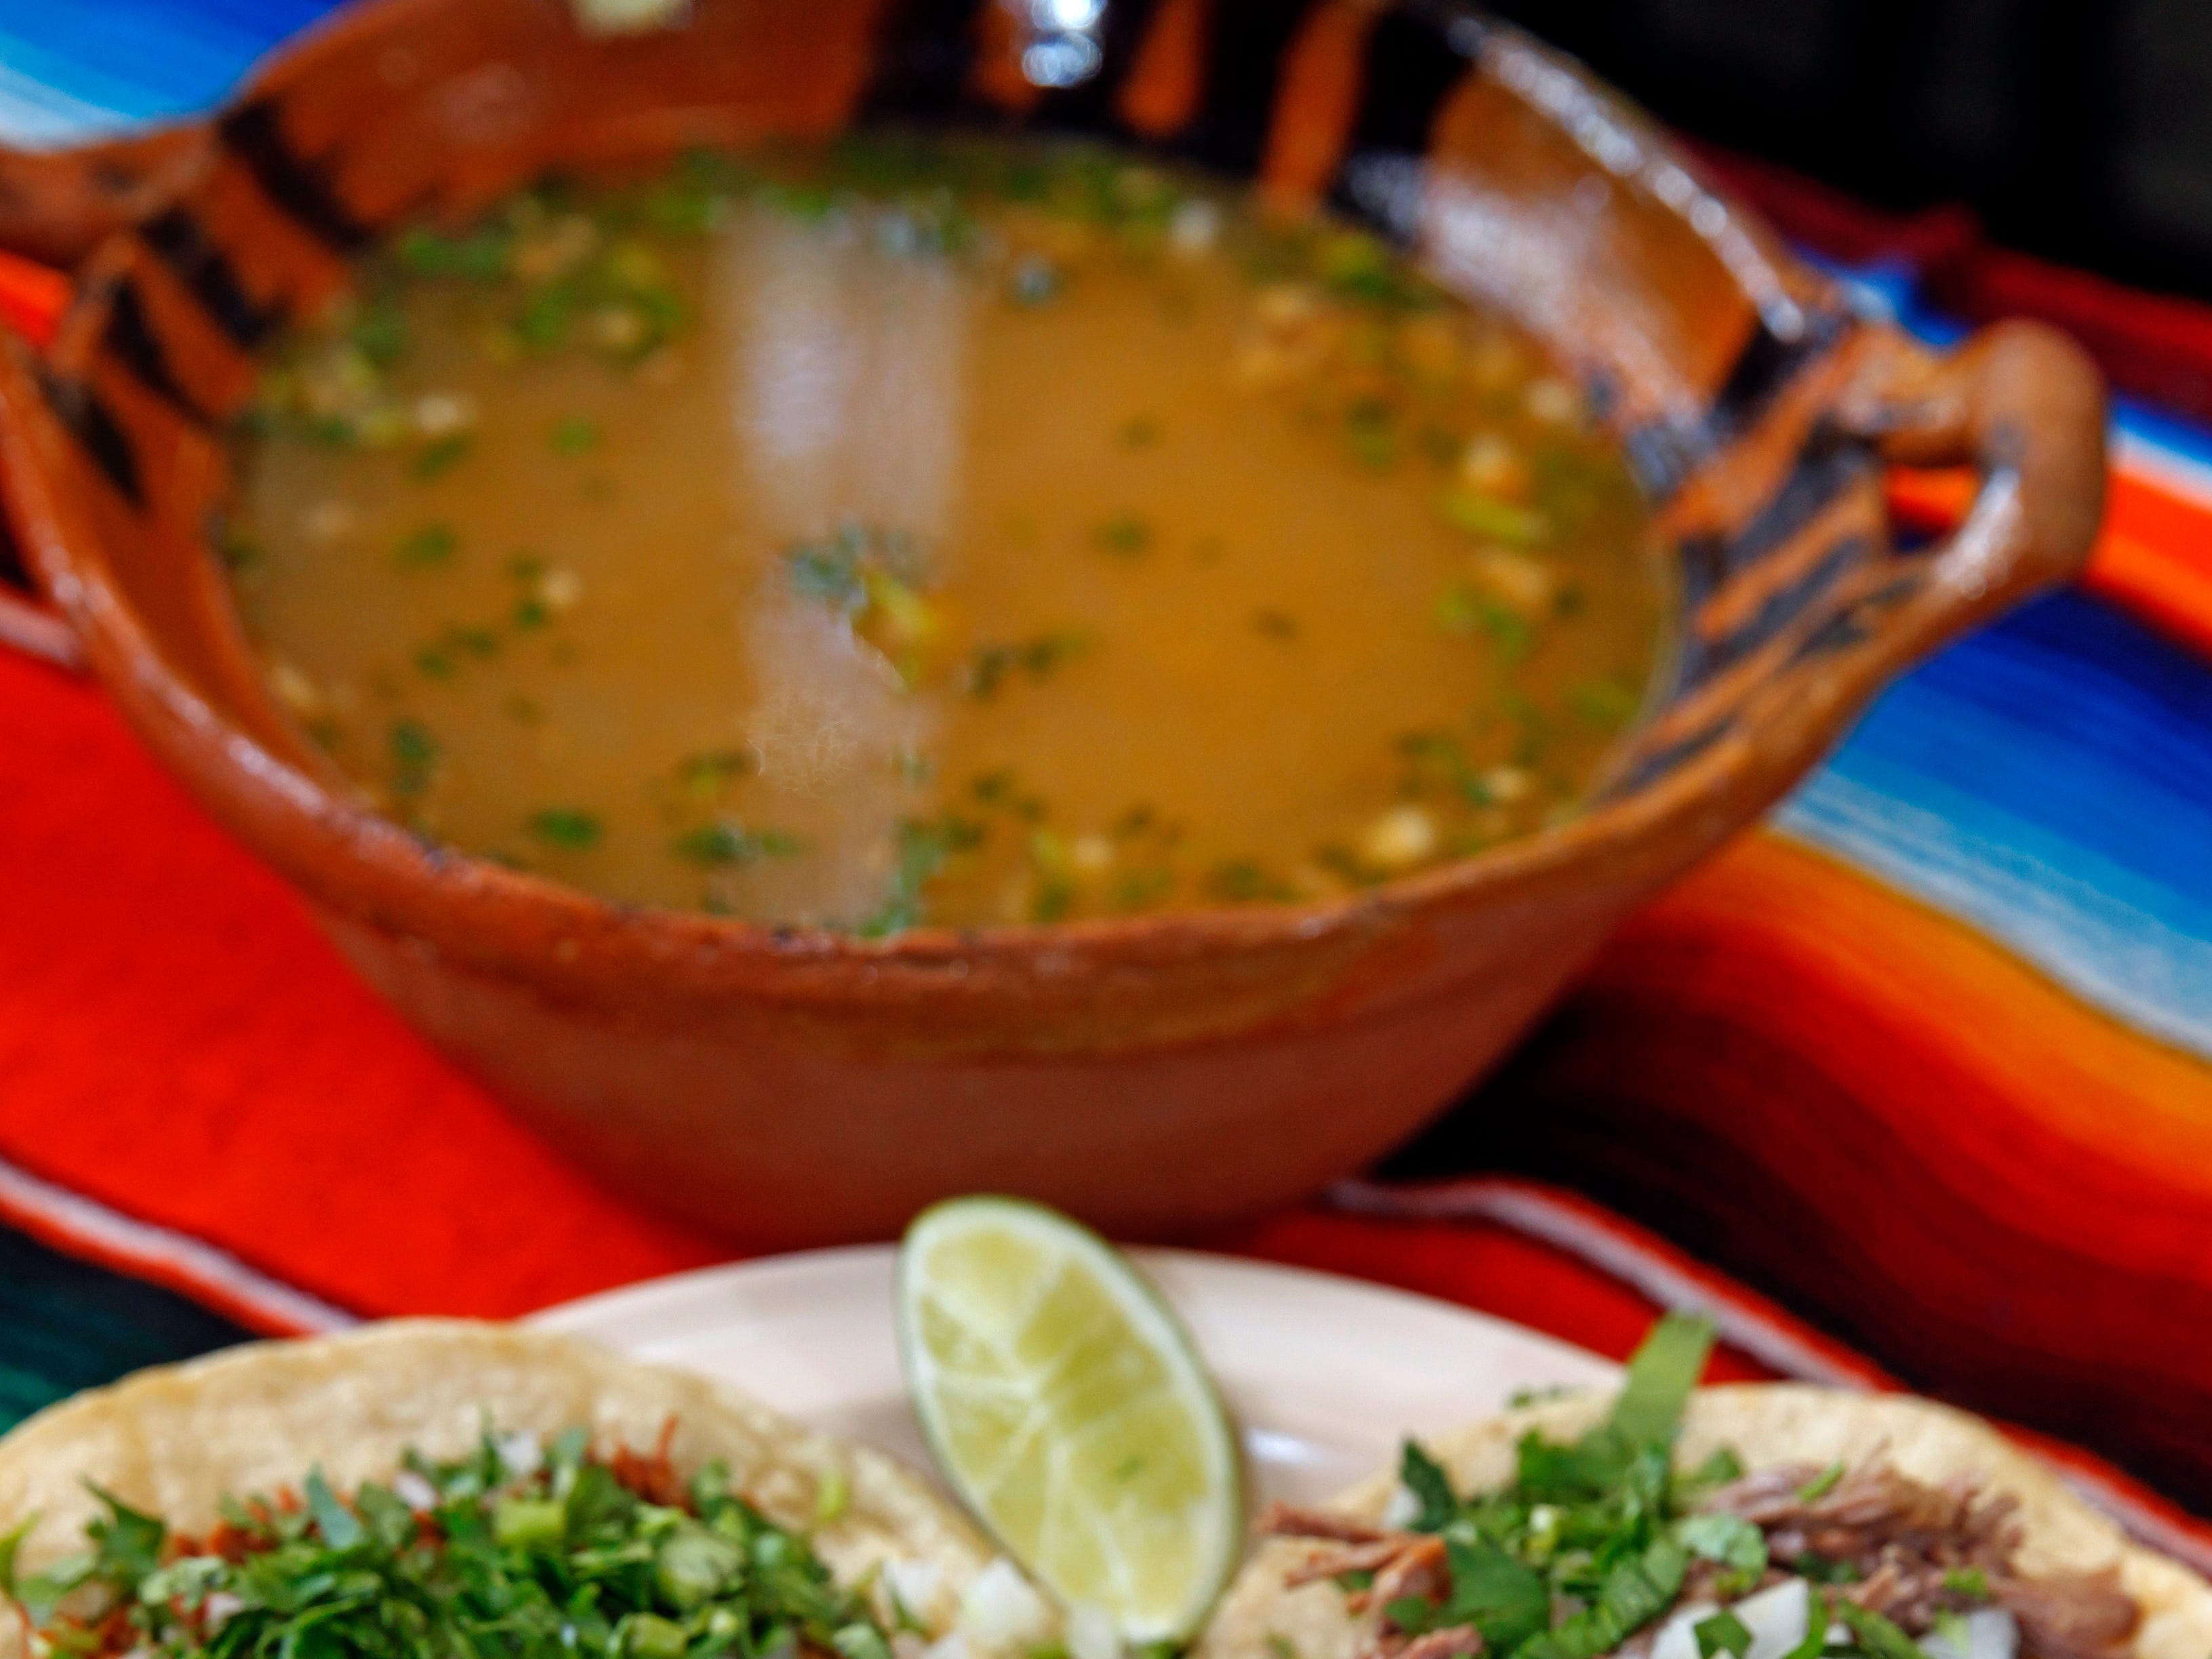 A specialty at El Tlaxcalteca is the consome de borrego, a large bowl of lamb soup that is served alongside lamb tacos.